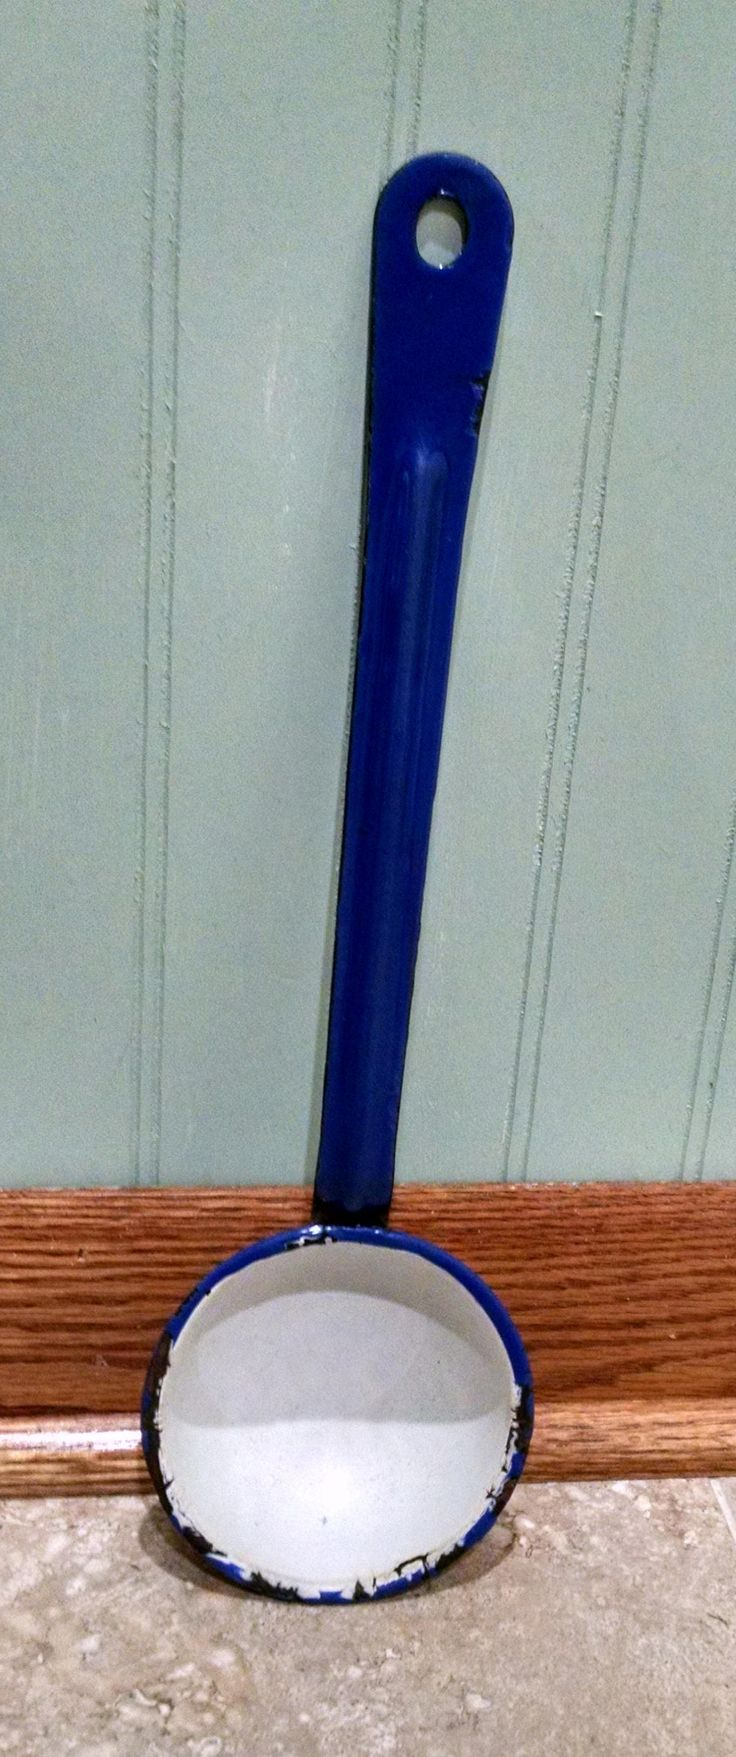 Enamelware Ladle - Dipper -Scoop - White and Blue - Vintage Kitchenware - Country Cottage Farmhouse Decor by ClassyVintageGlass on Etsy